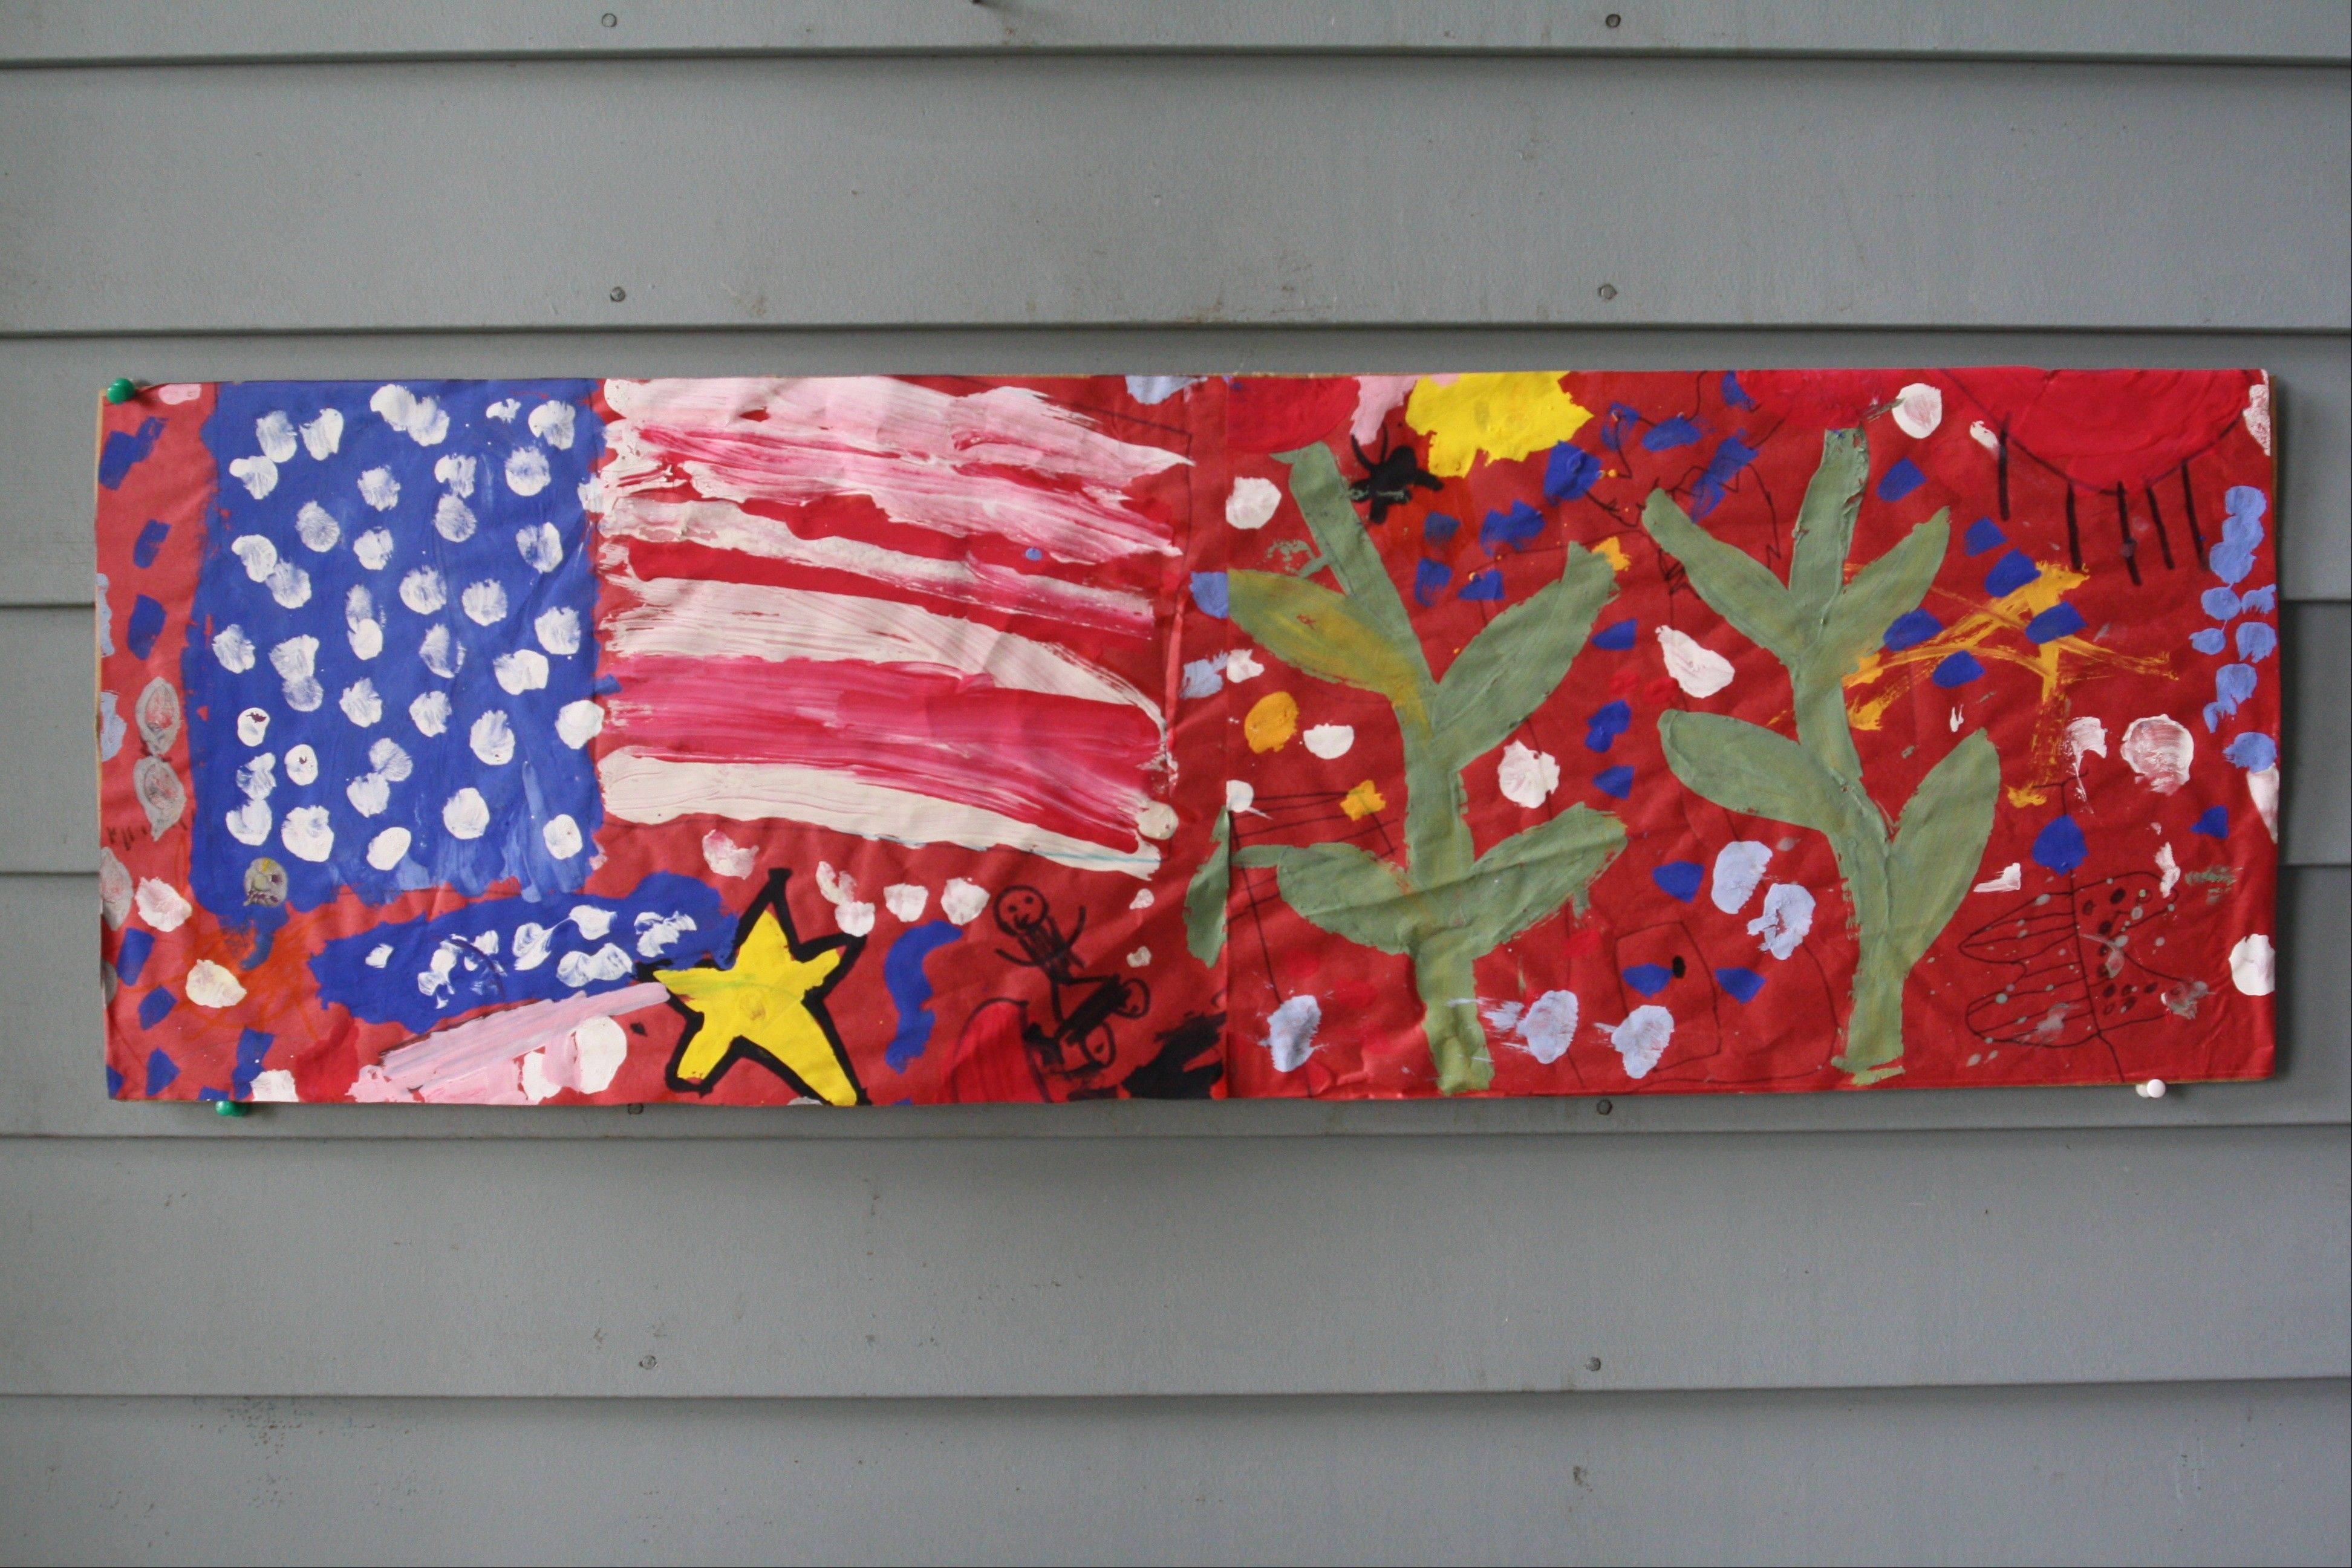 A portion of a mural commemorating the events of Sept. 11, 2001, painted by students from Louise White Elementary School in Batavia, hangs on a wall in the home of Daily Herald columnist Sammi King.